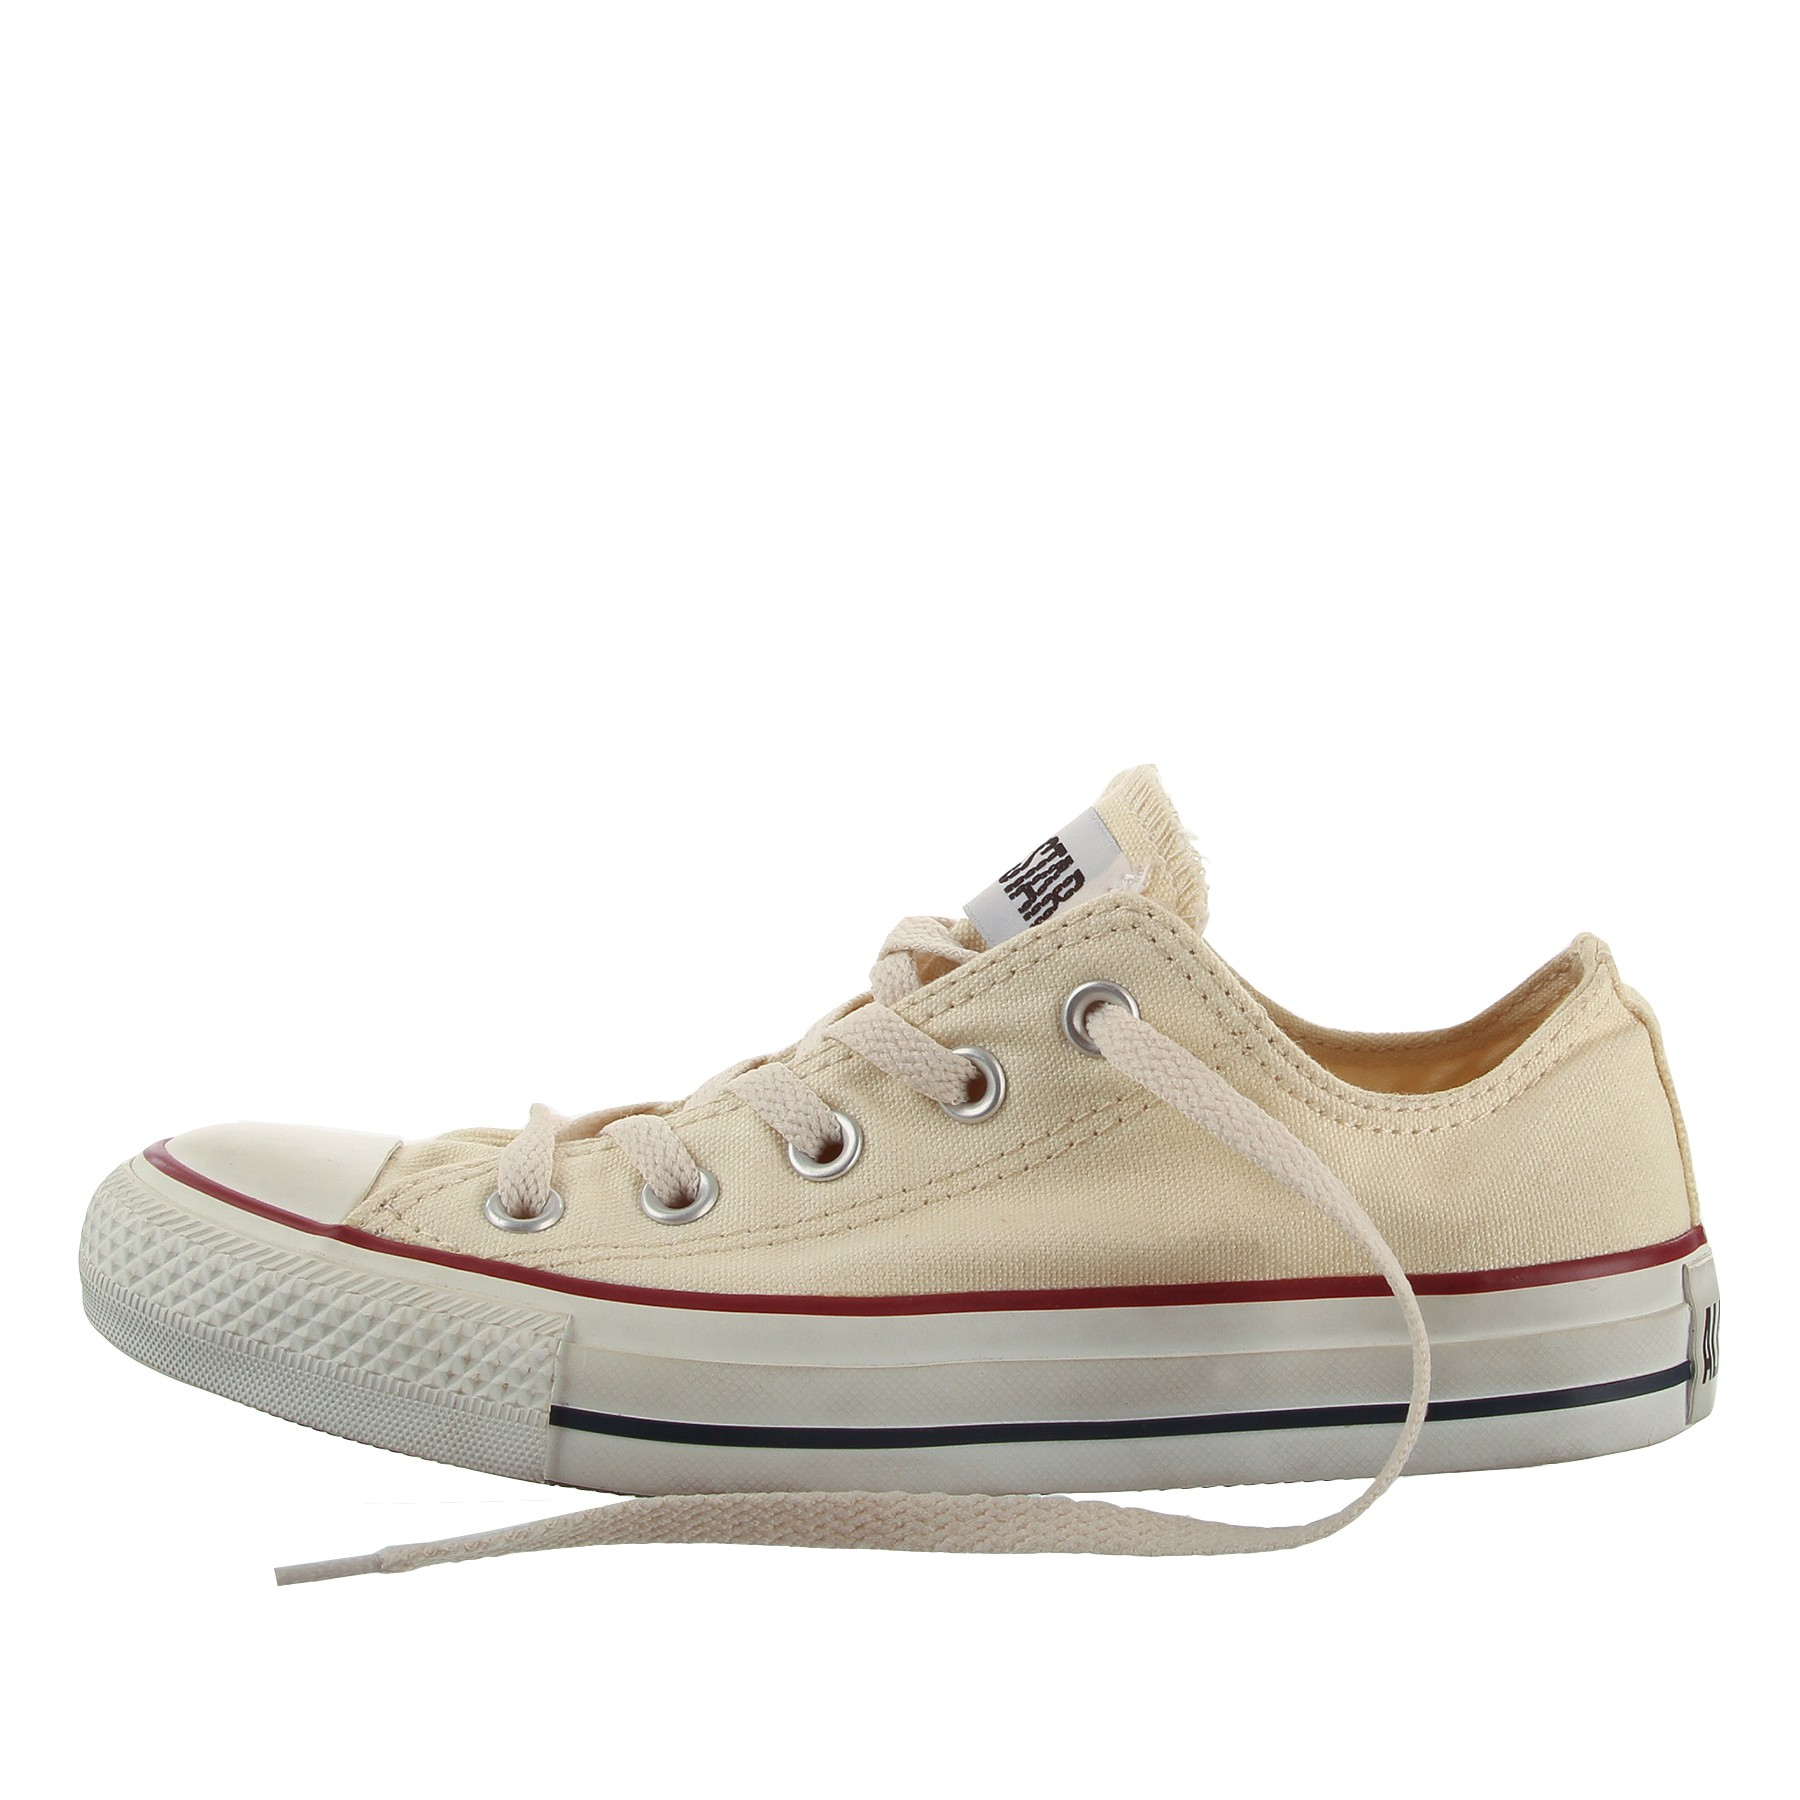 M9165 CT CHUCK TAYLOR AS CORE/ WHITE Bild https://cdn03.plentymarkets.com/zsy4vjx32p87/item/images/4263/full/M9165-ama-02.JPG